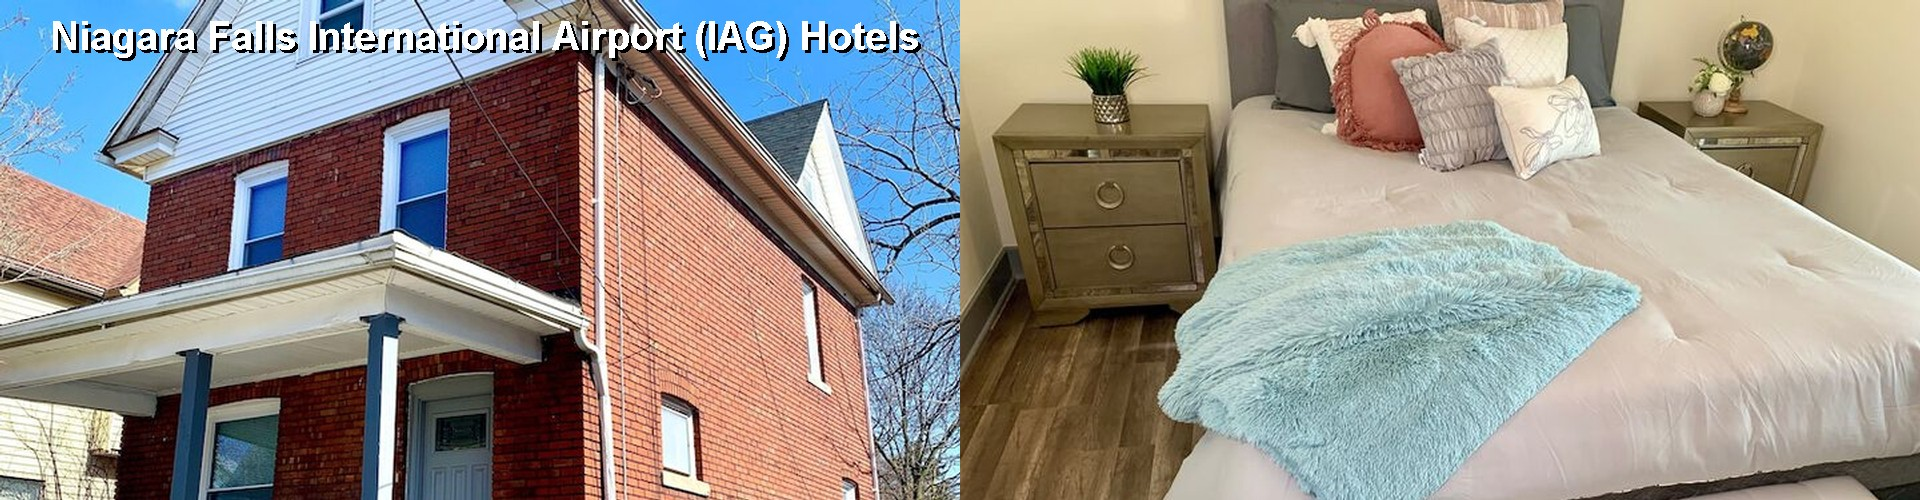 5 Best Hotels near Niagara Falls International Airport (IAG)